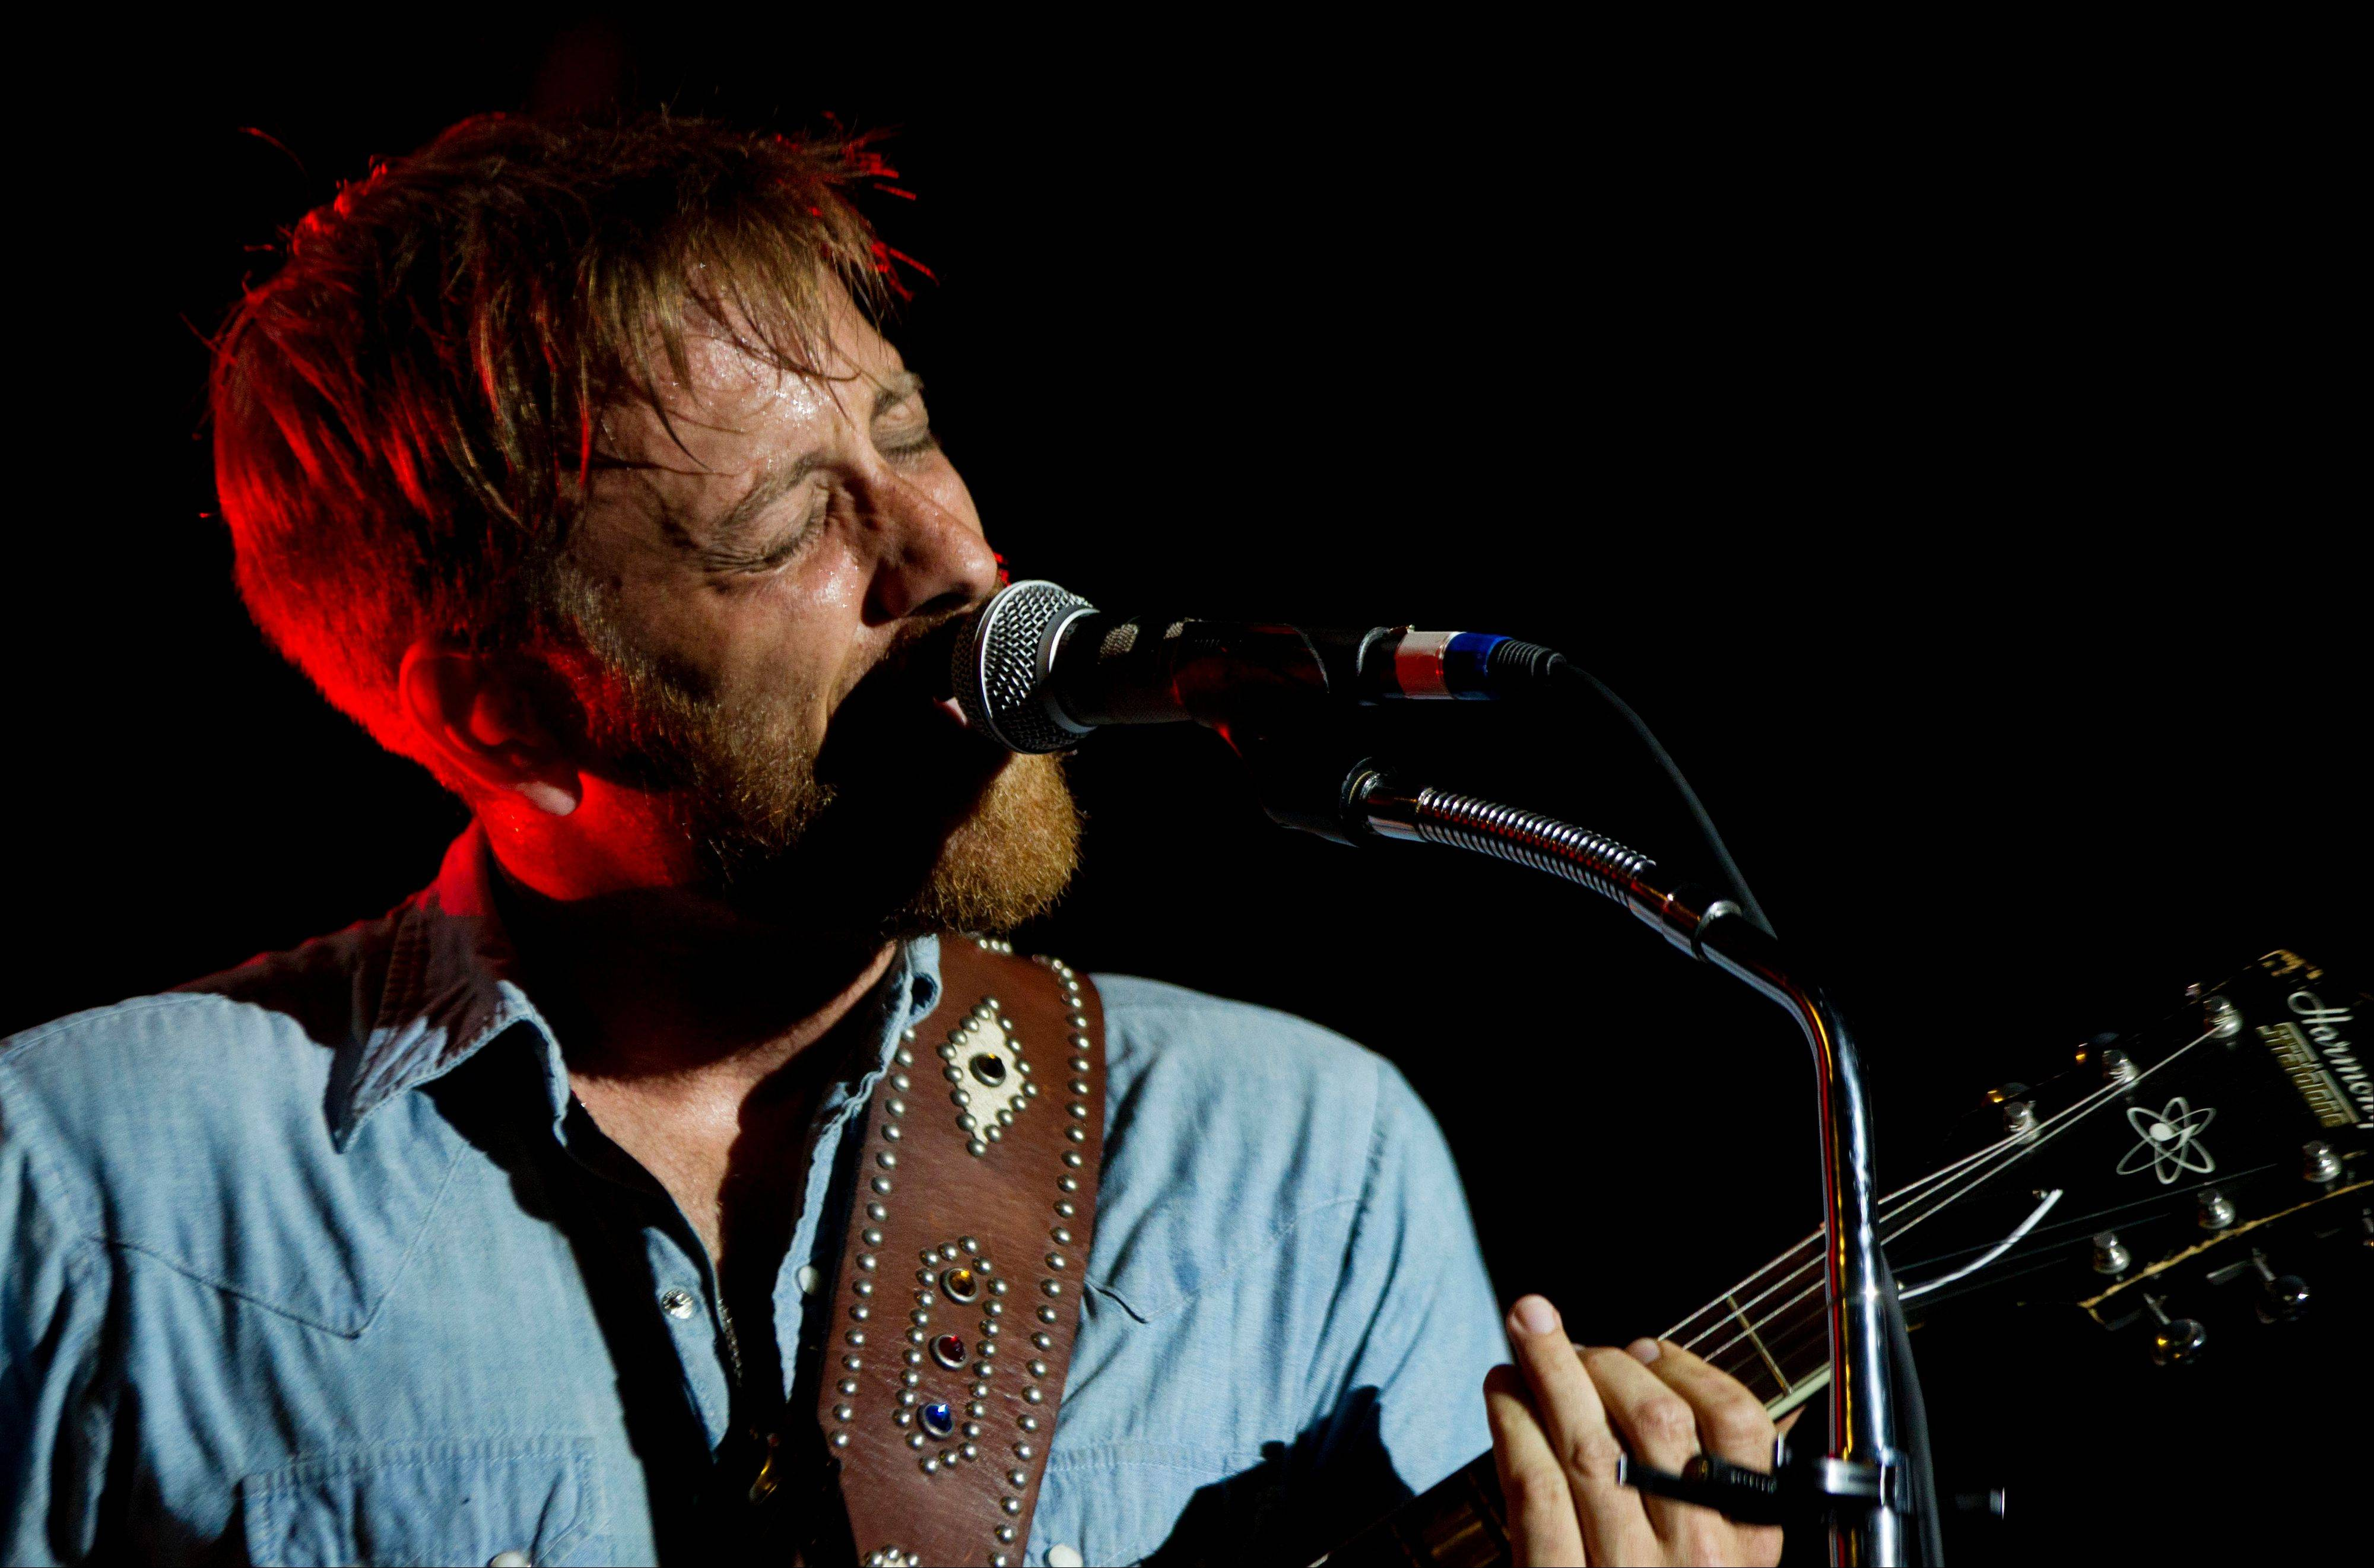 Dan Auerbach from The Black Keys performs at Lollapalooza in Chicago's Grant Park on Friday, Aug. 3, 2012.